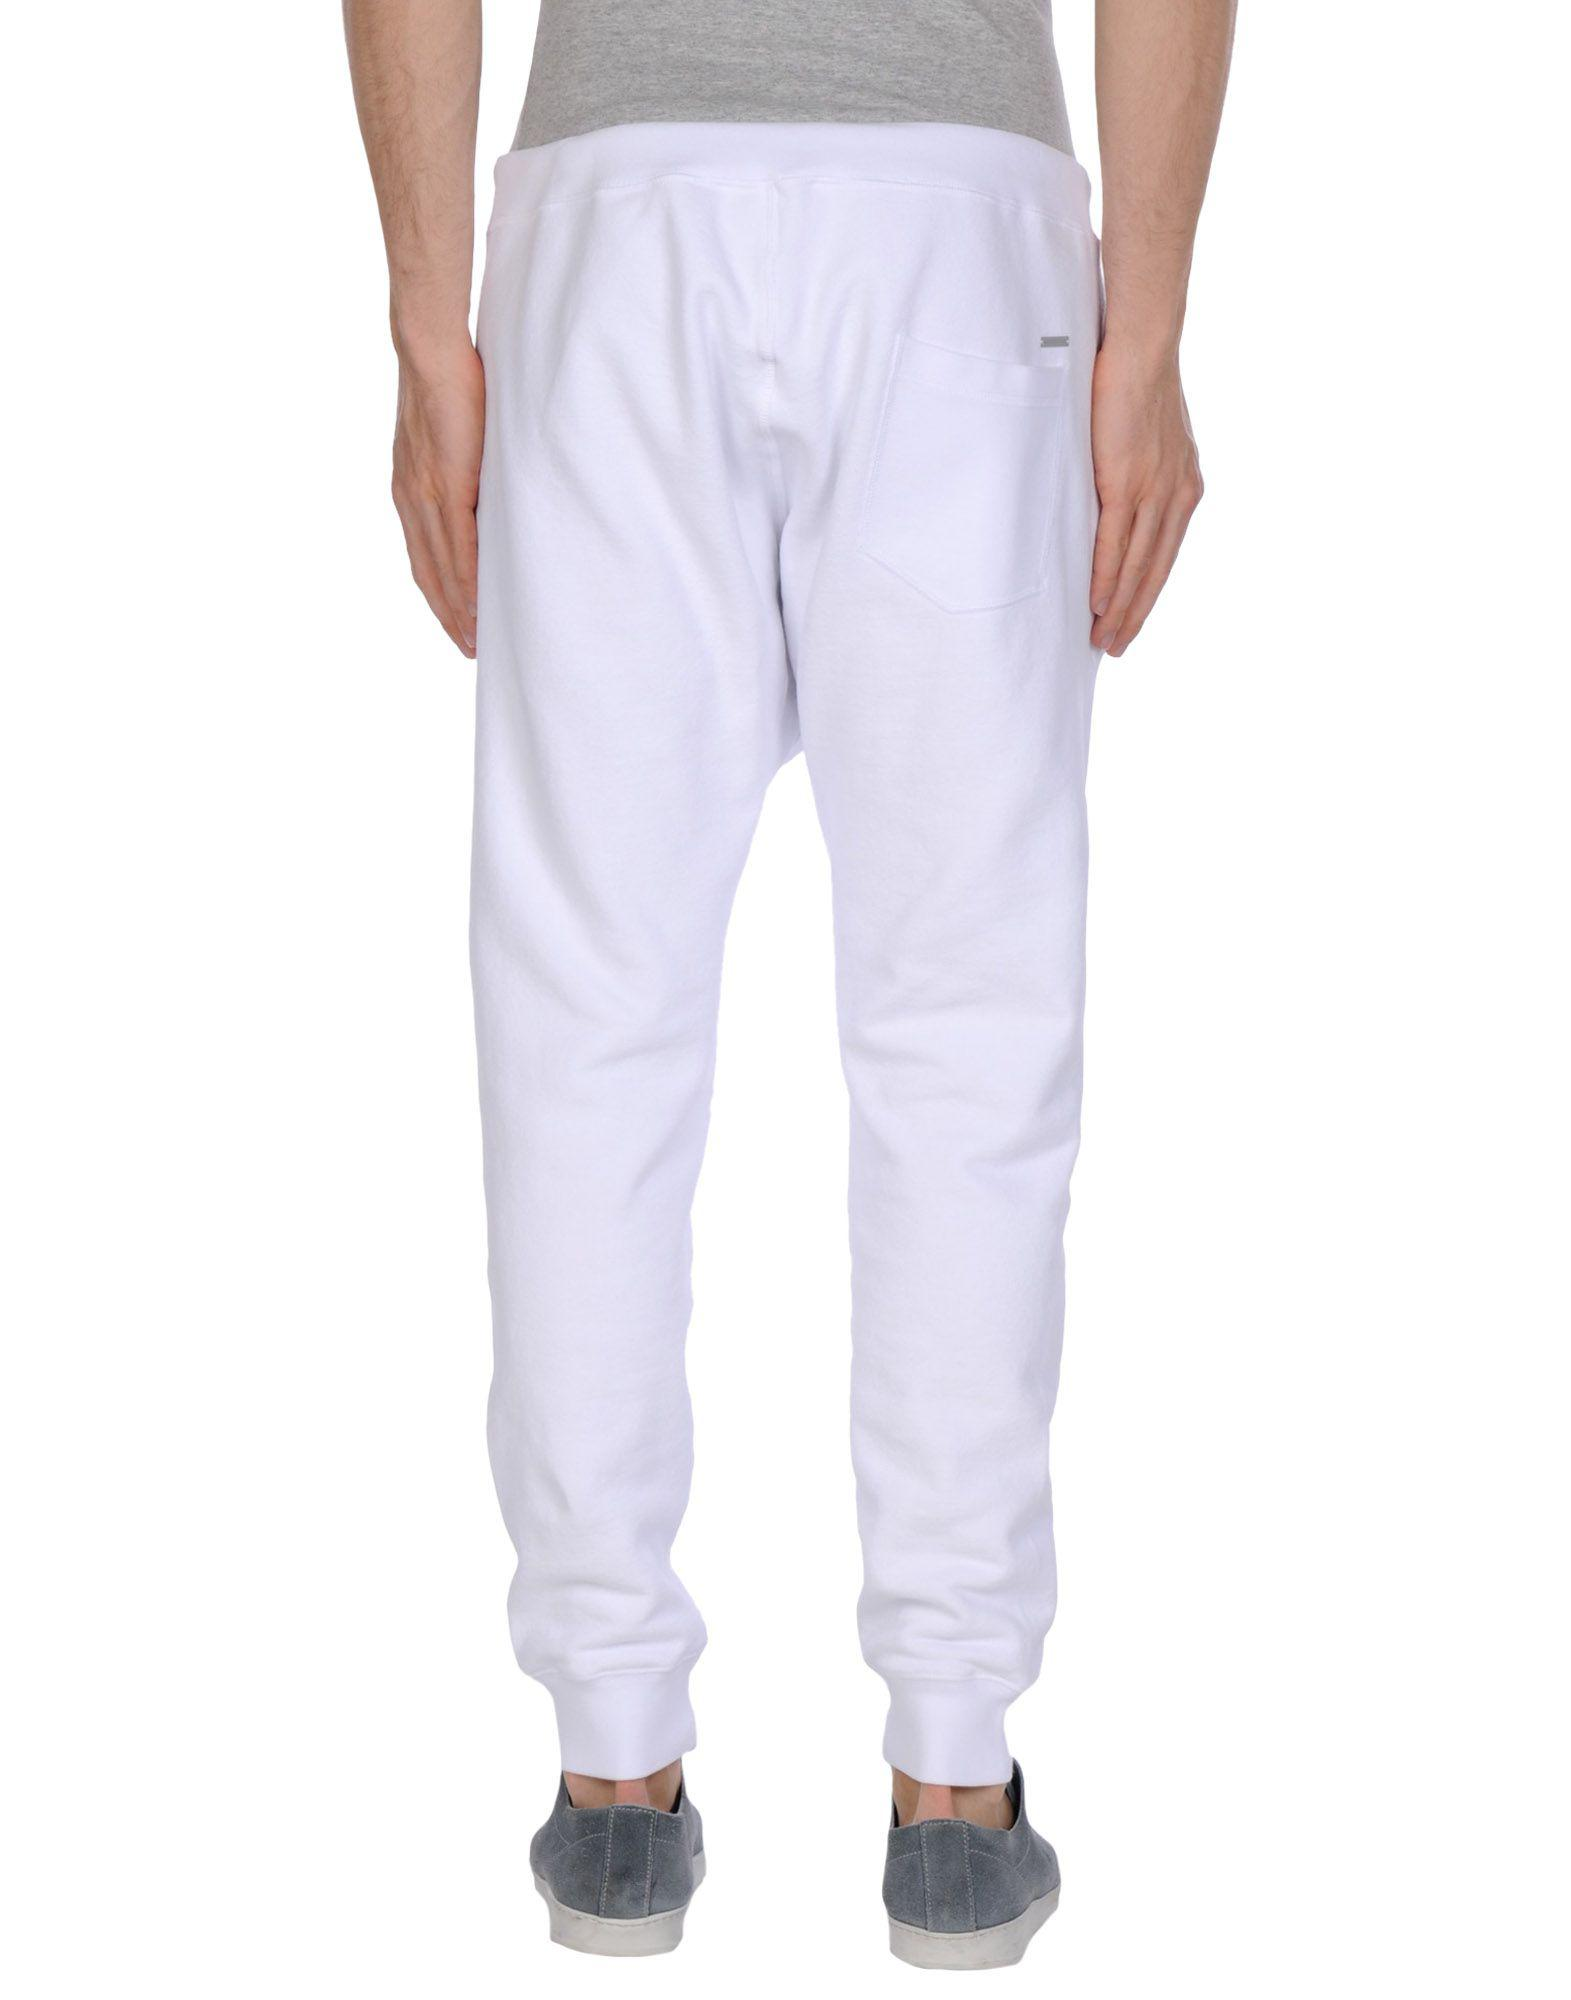 DSquared² Casual Trouser in White for Men